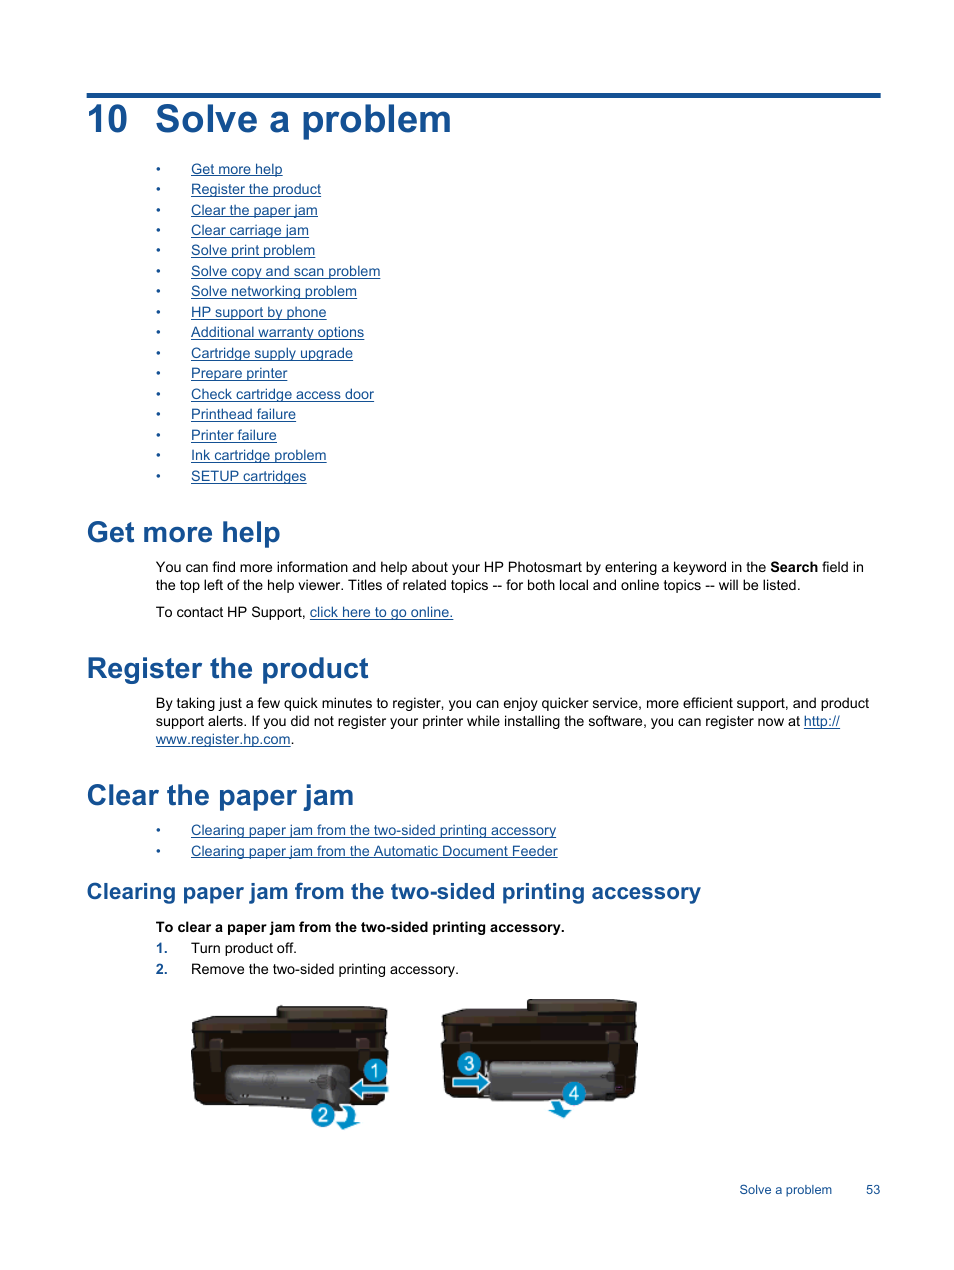 Solve a problem, Get more help, Register the product   HP